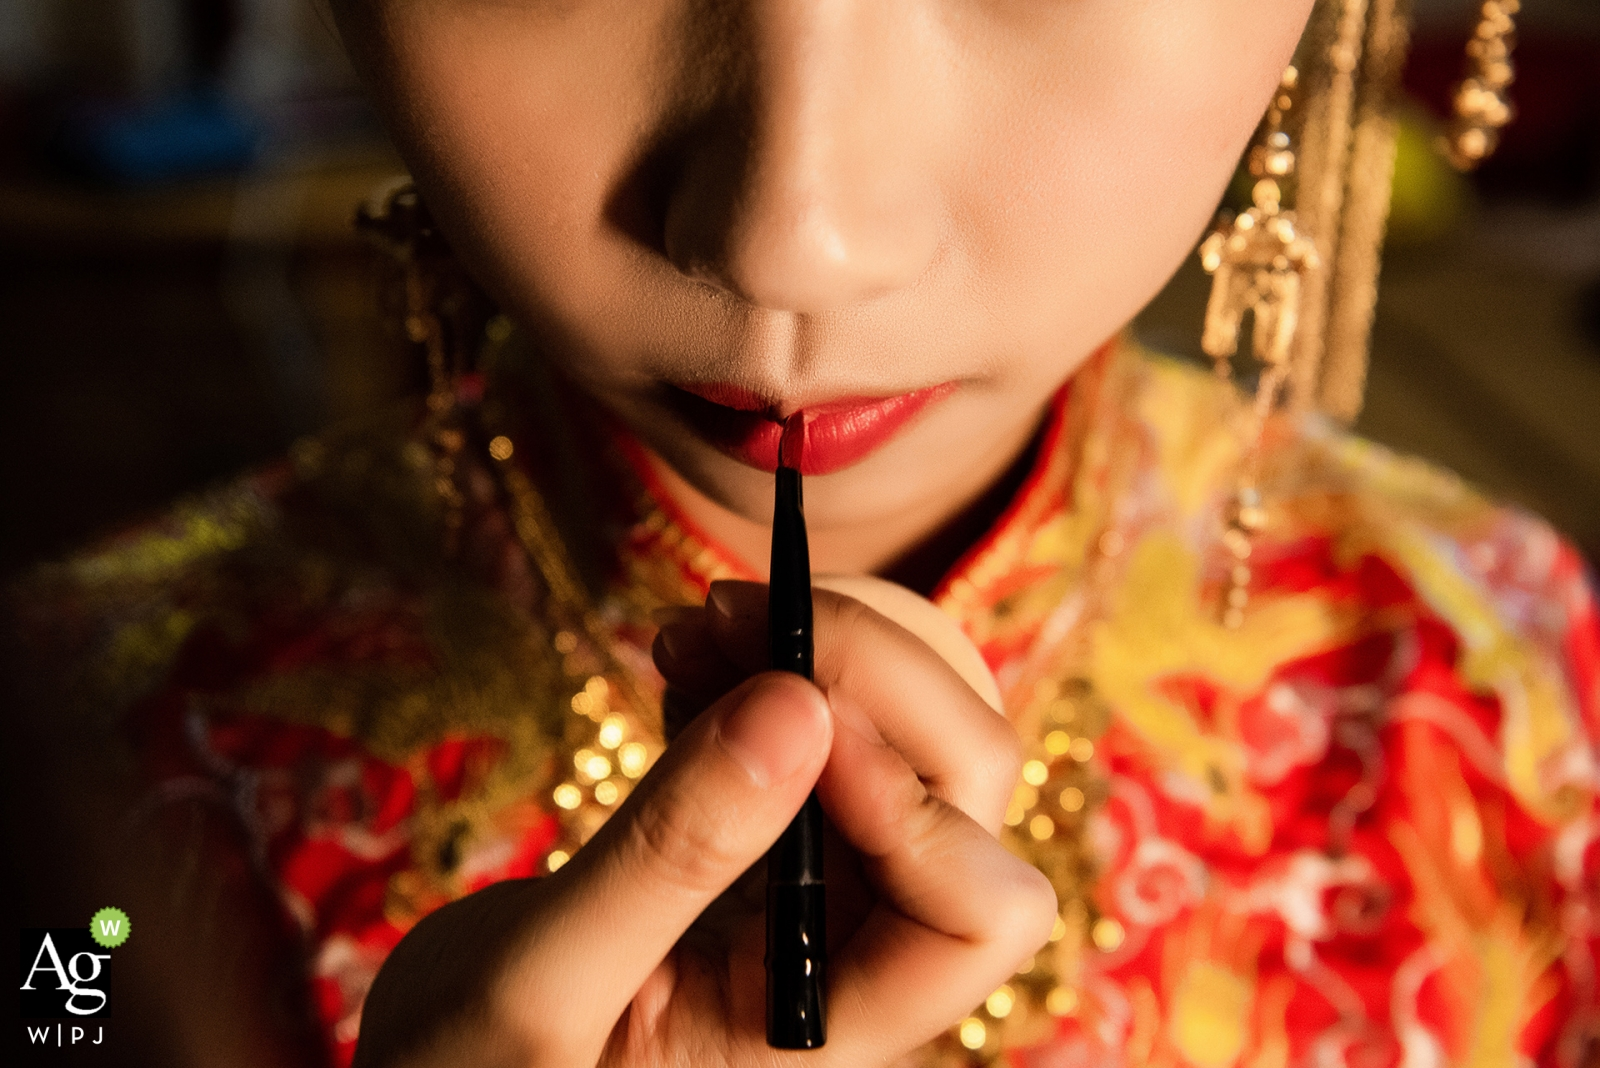 Fujian, China detail of lipstick being applied to bride's lips